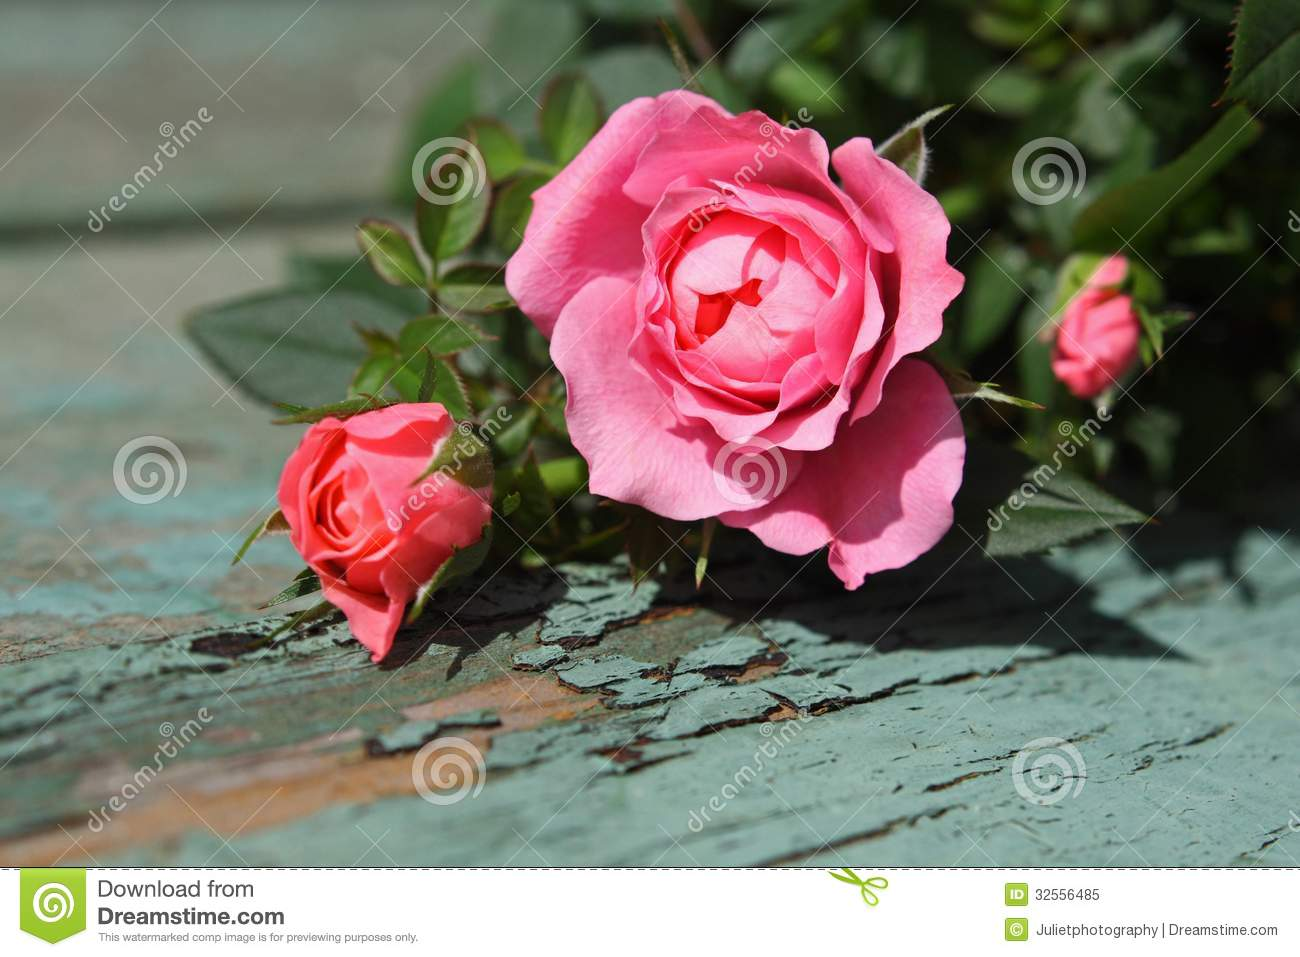 Romantic Pink Roses Background Stock Image - Image of rose ...